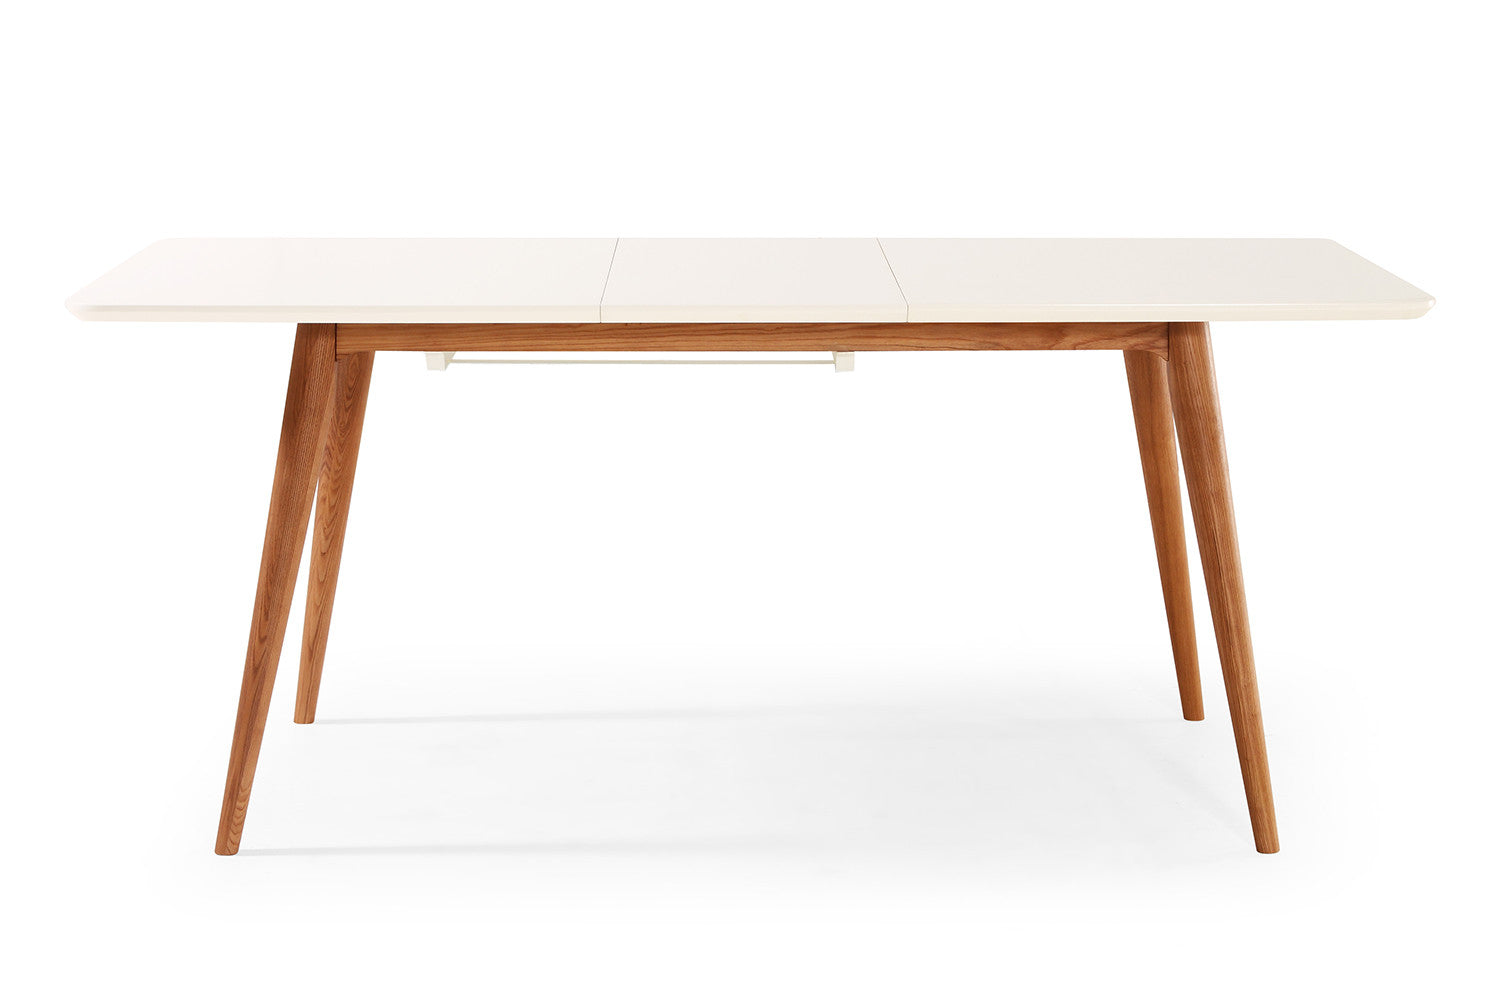 table de salle manger extensible scandinave wyna dewarens On table de salle a manger design scandinave